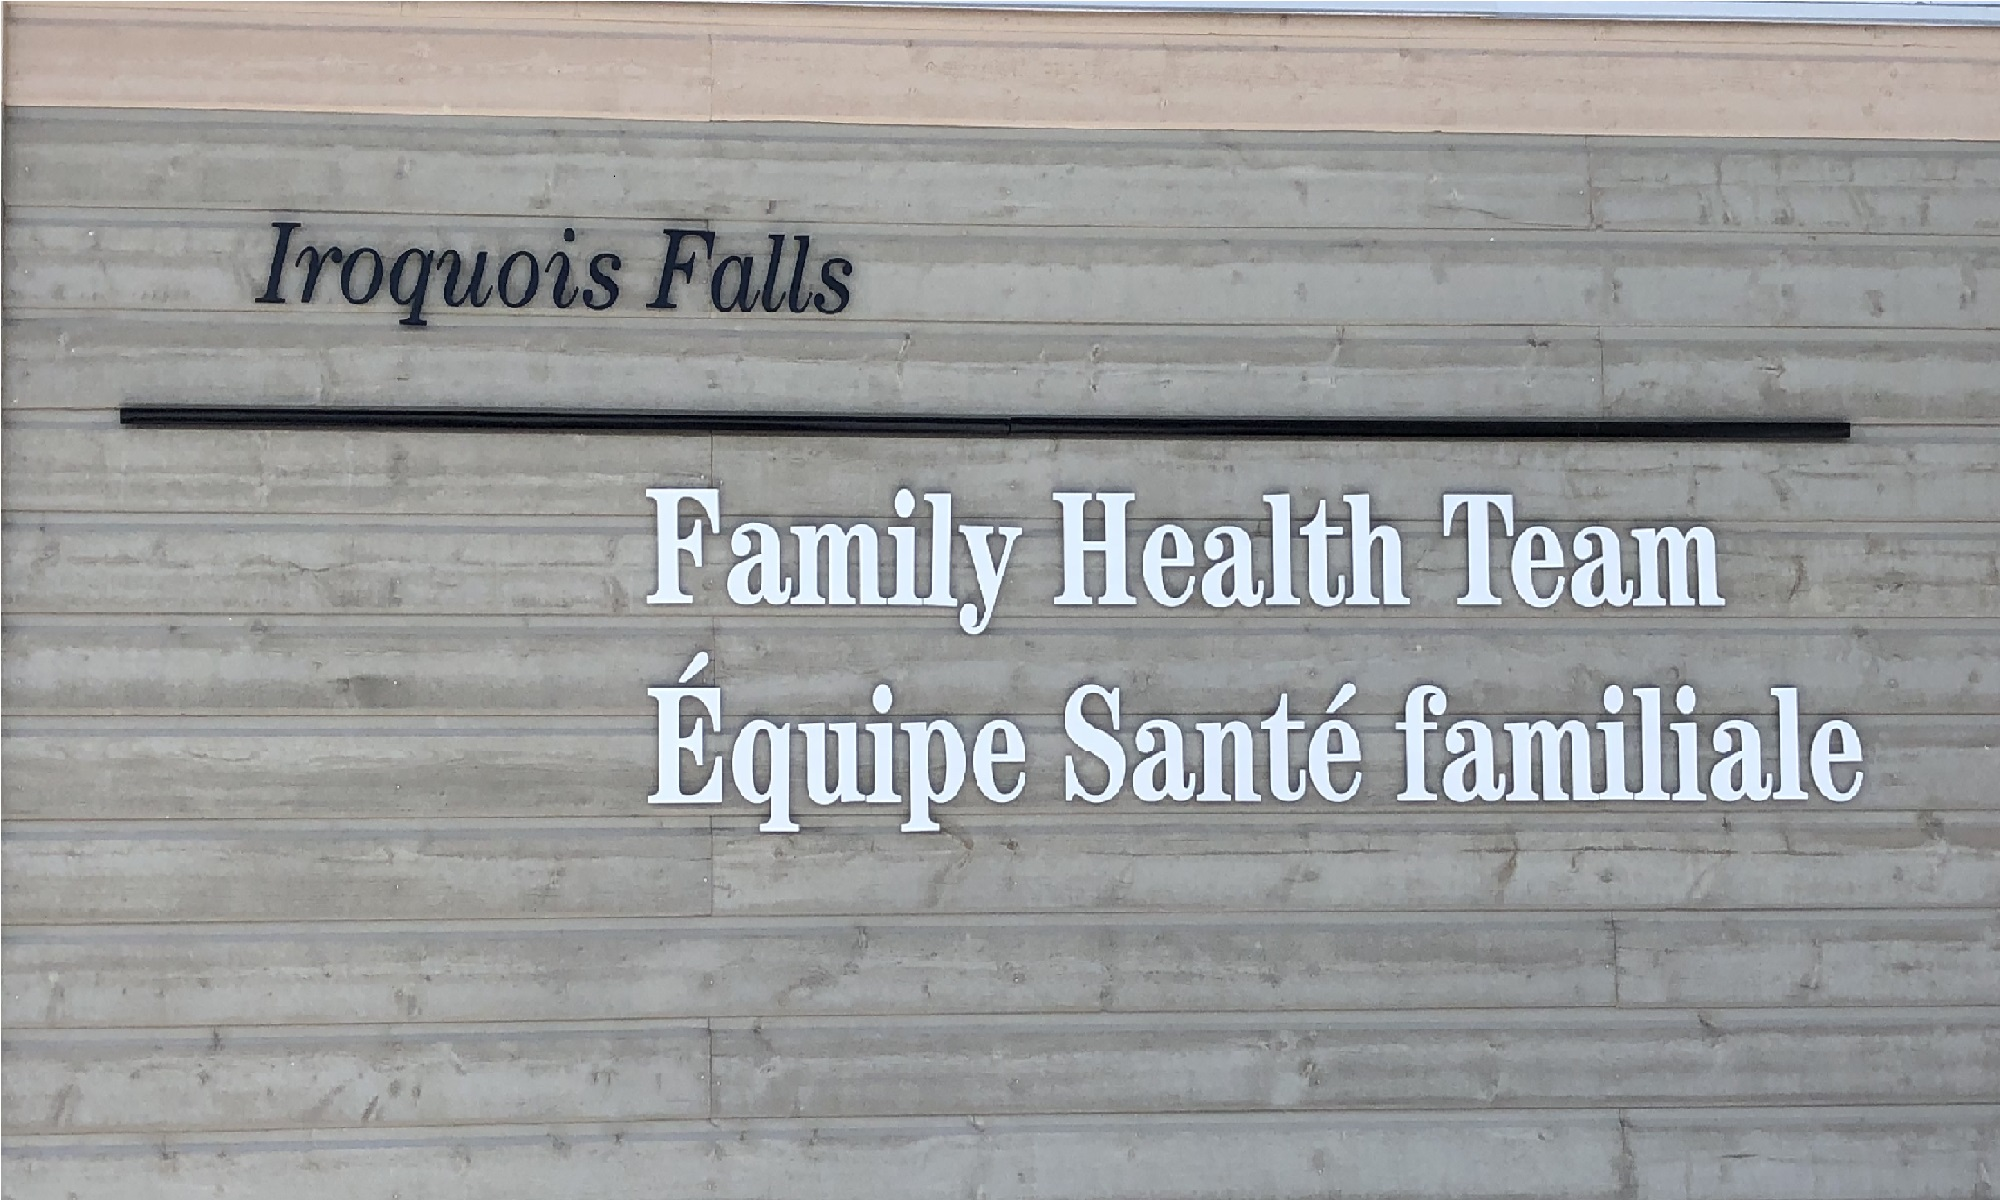 Iroquois Falls Family Health Team